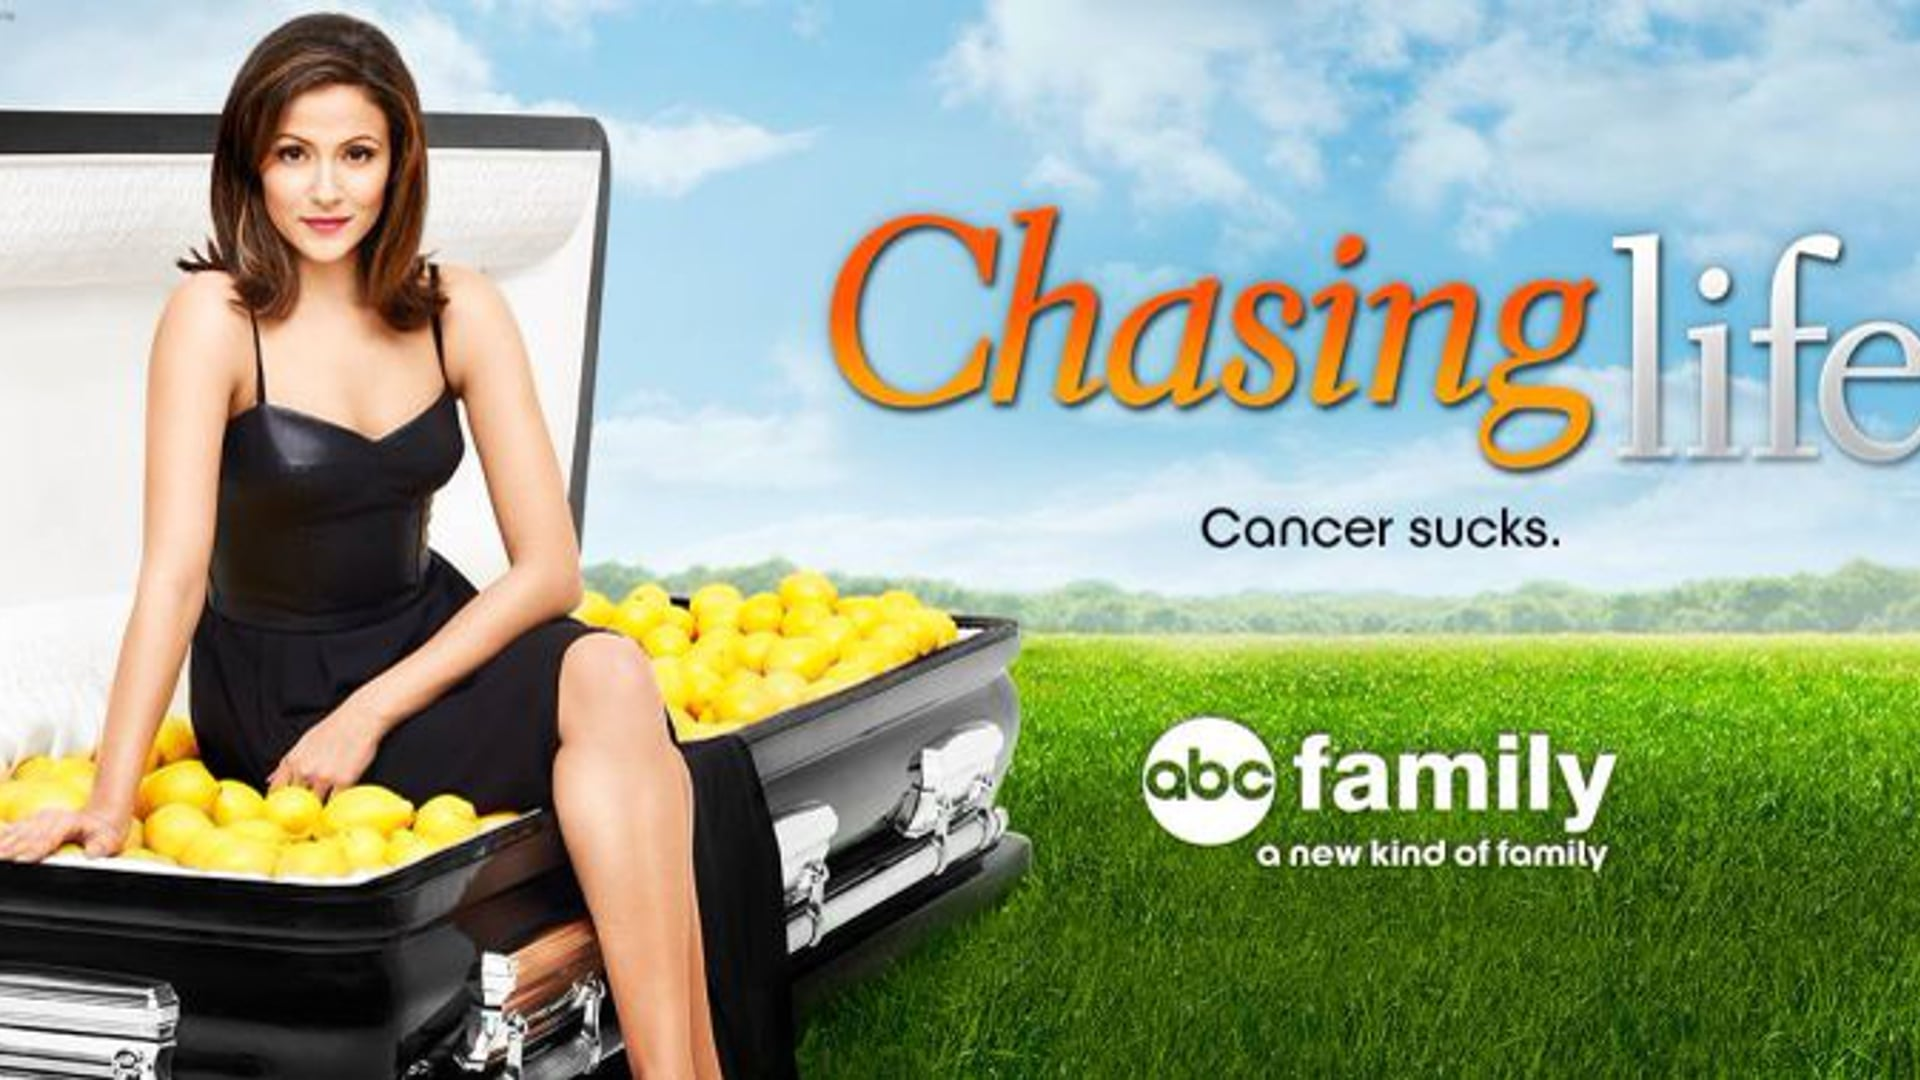 FLY AWAY ON CHASING LIFE